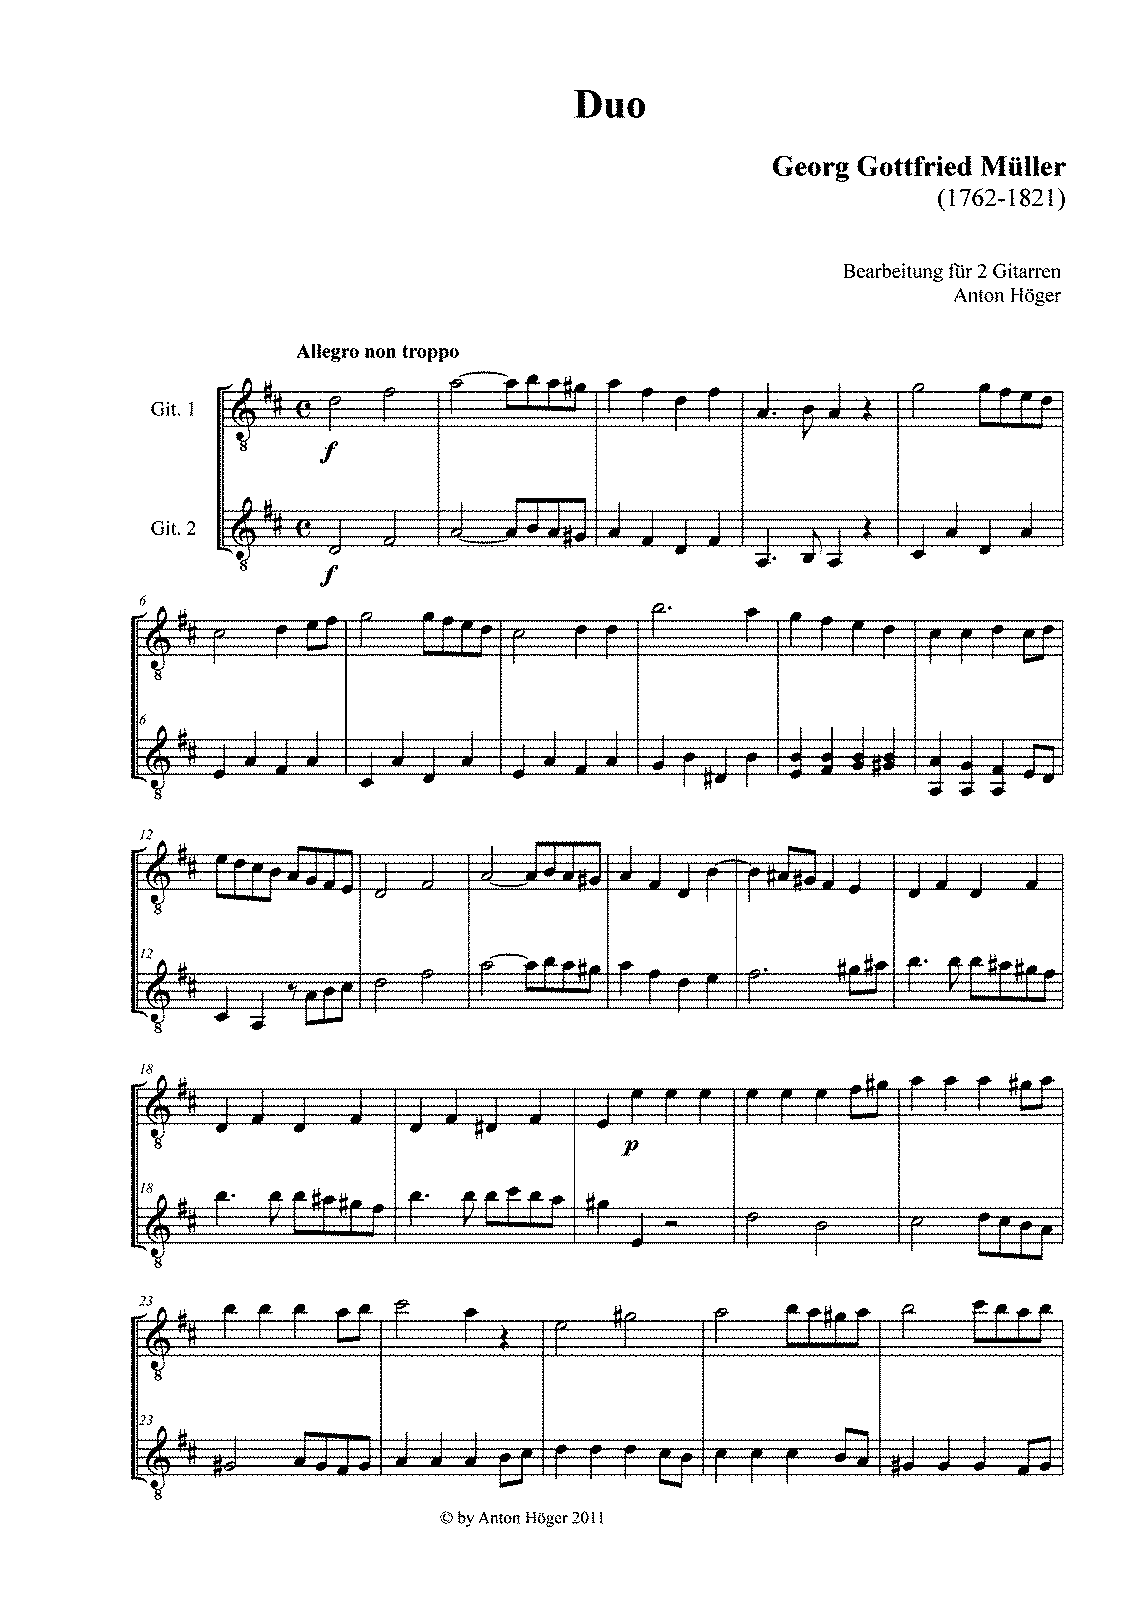 PMLP278418-Müller, Georg Gottfried - Duo.pdf